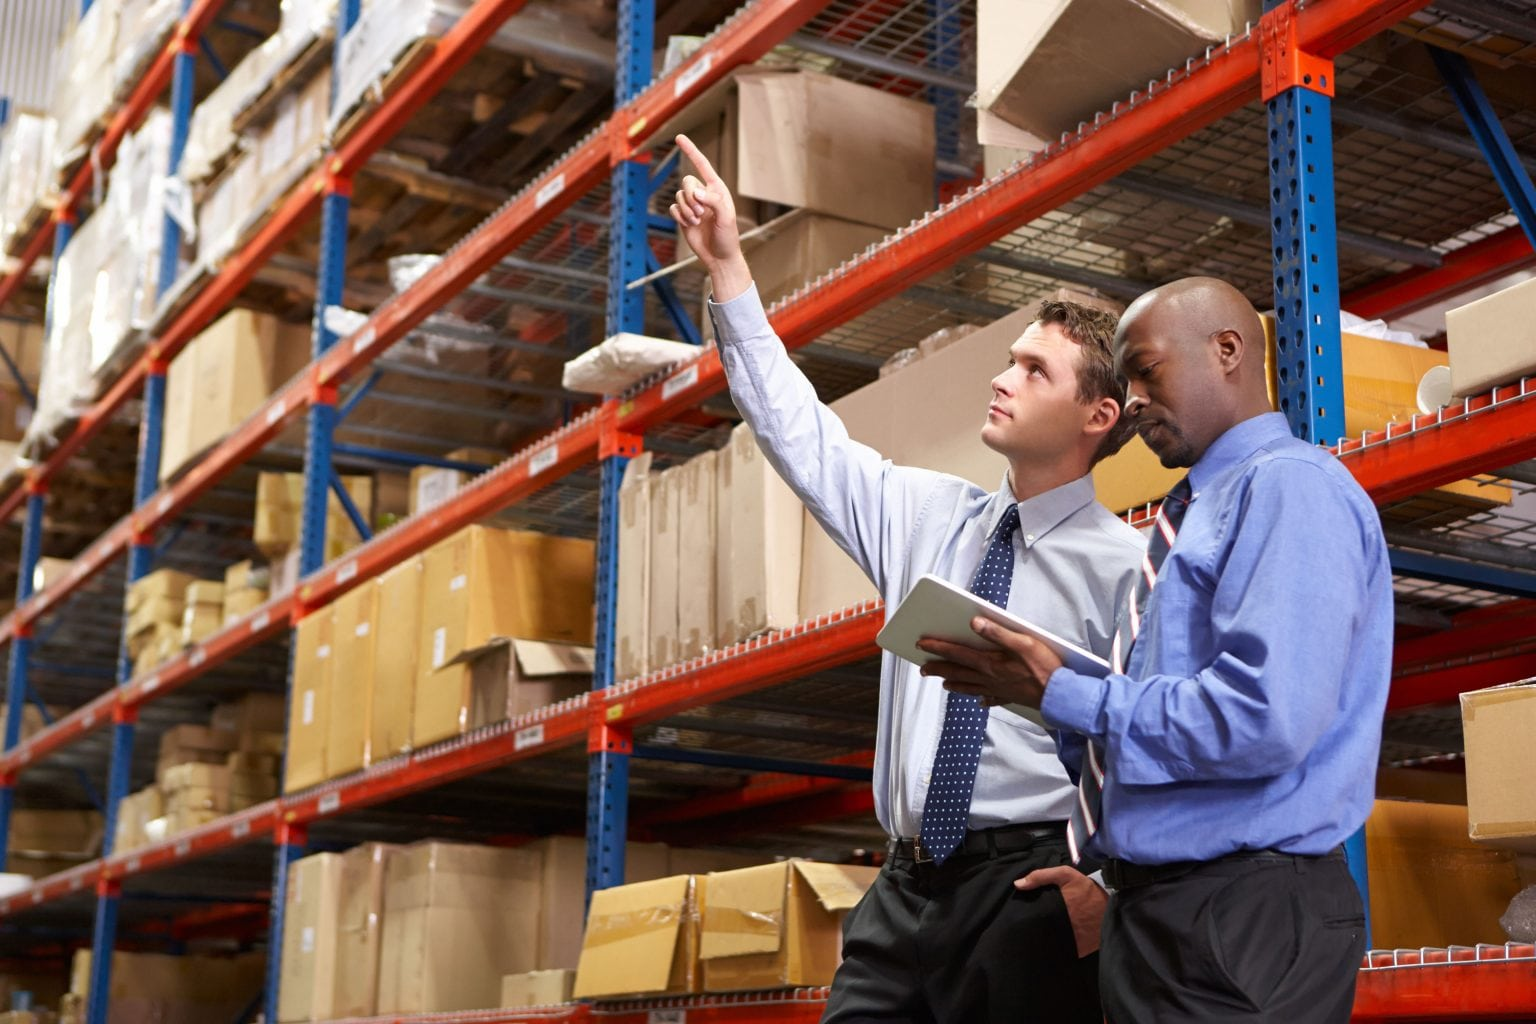 Two men checking inventory at a warehouse